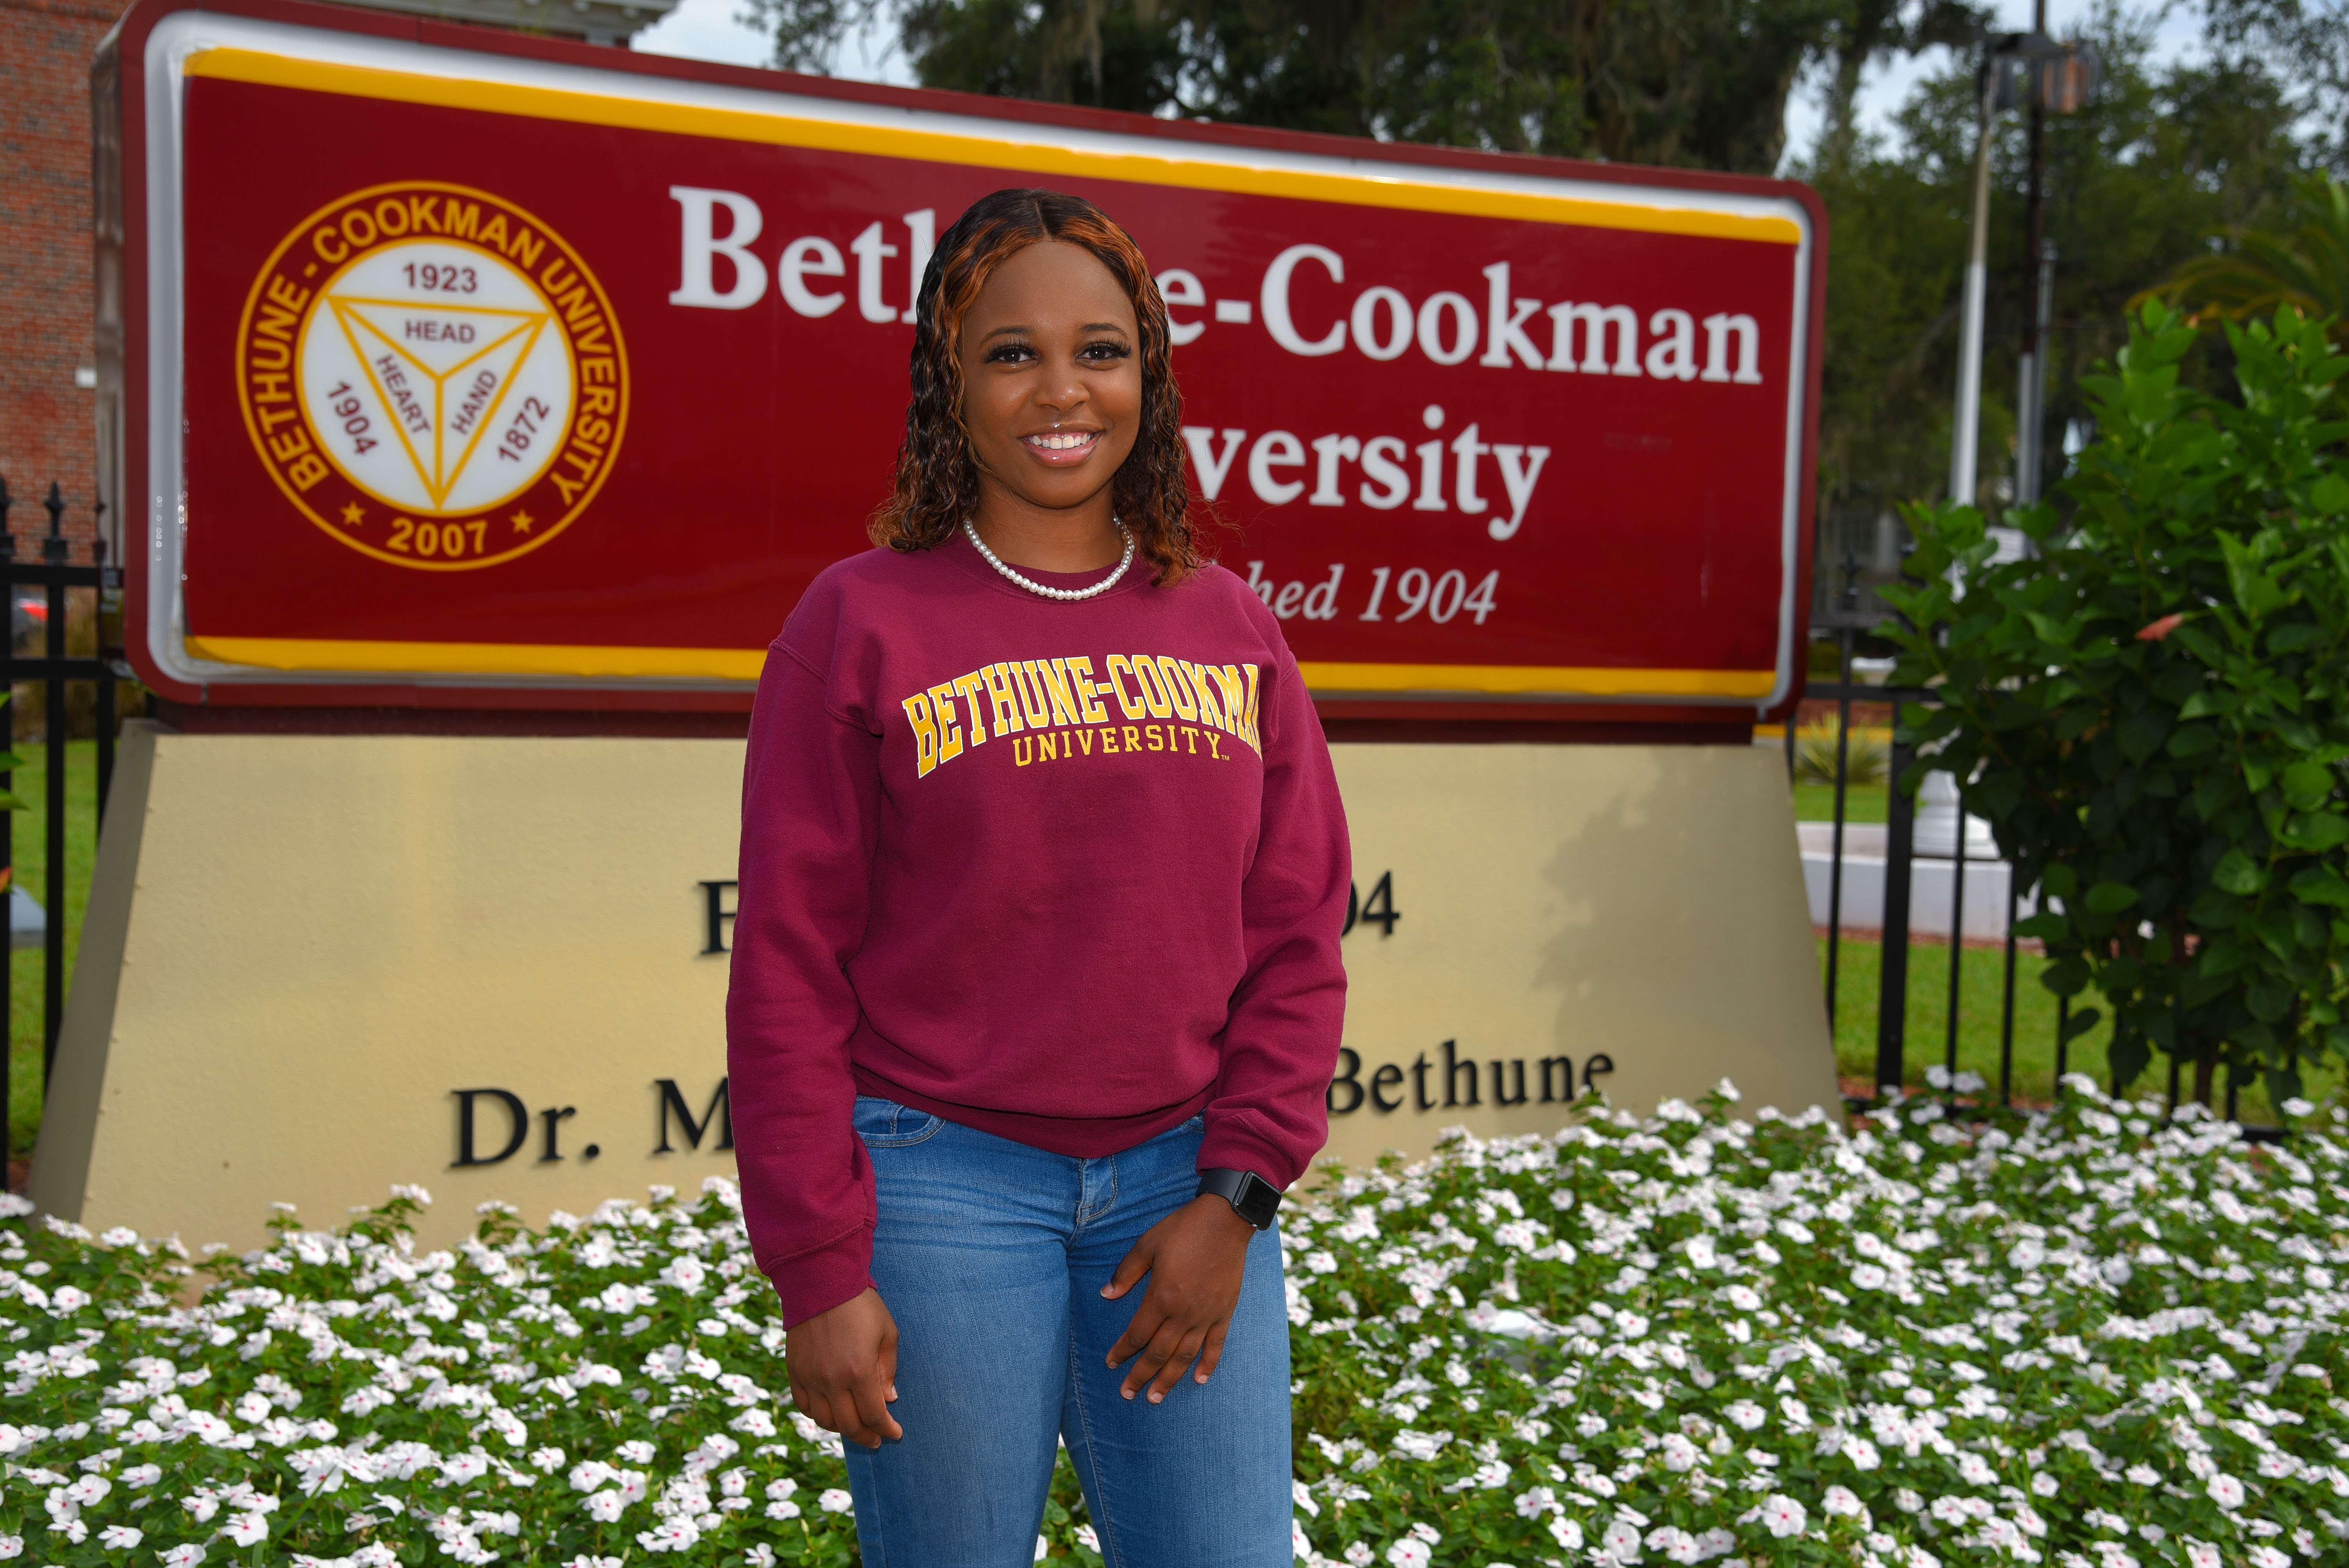 Bethune-Cookman University student Gege Baptiste poses for a portrait on campus in Daytona Beach, Fla., on Aug. 21, 2020. Baptiste is Haitian and, unlike her fellow college and university students, can't receive federal financial aid because she is on temporary protected status.